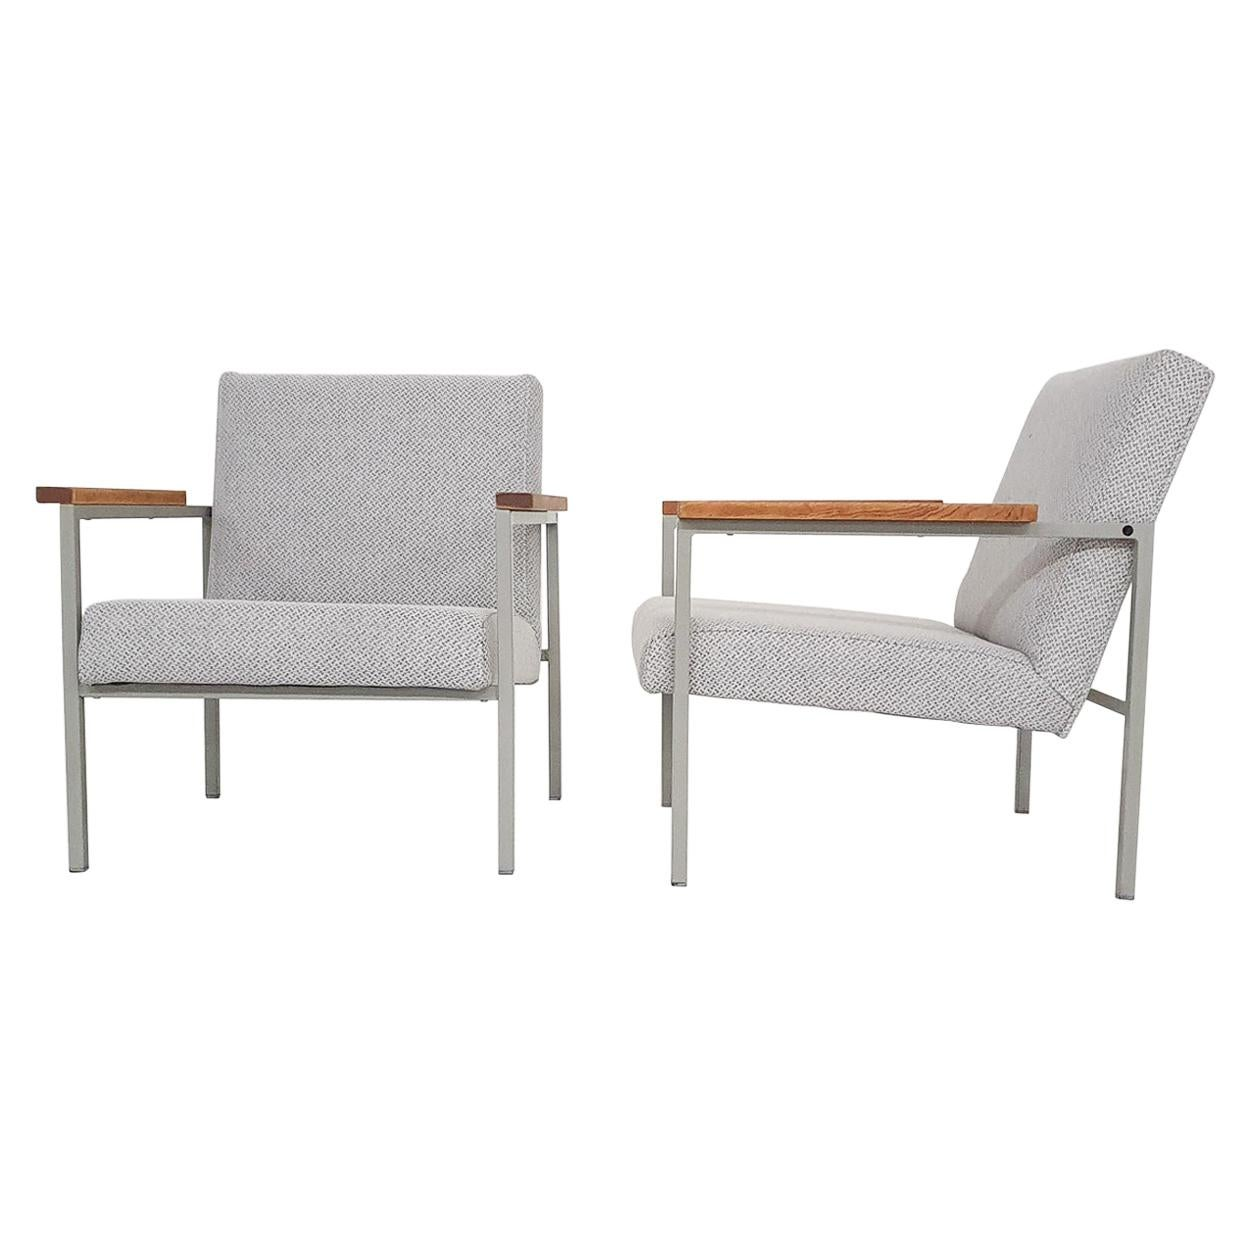 Set of Two Midcentury Dutch Design Lounge Chairs, 1960s